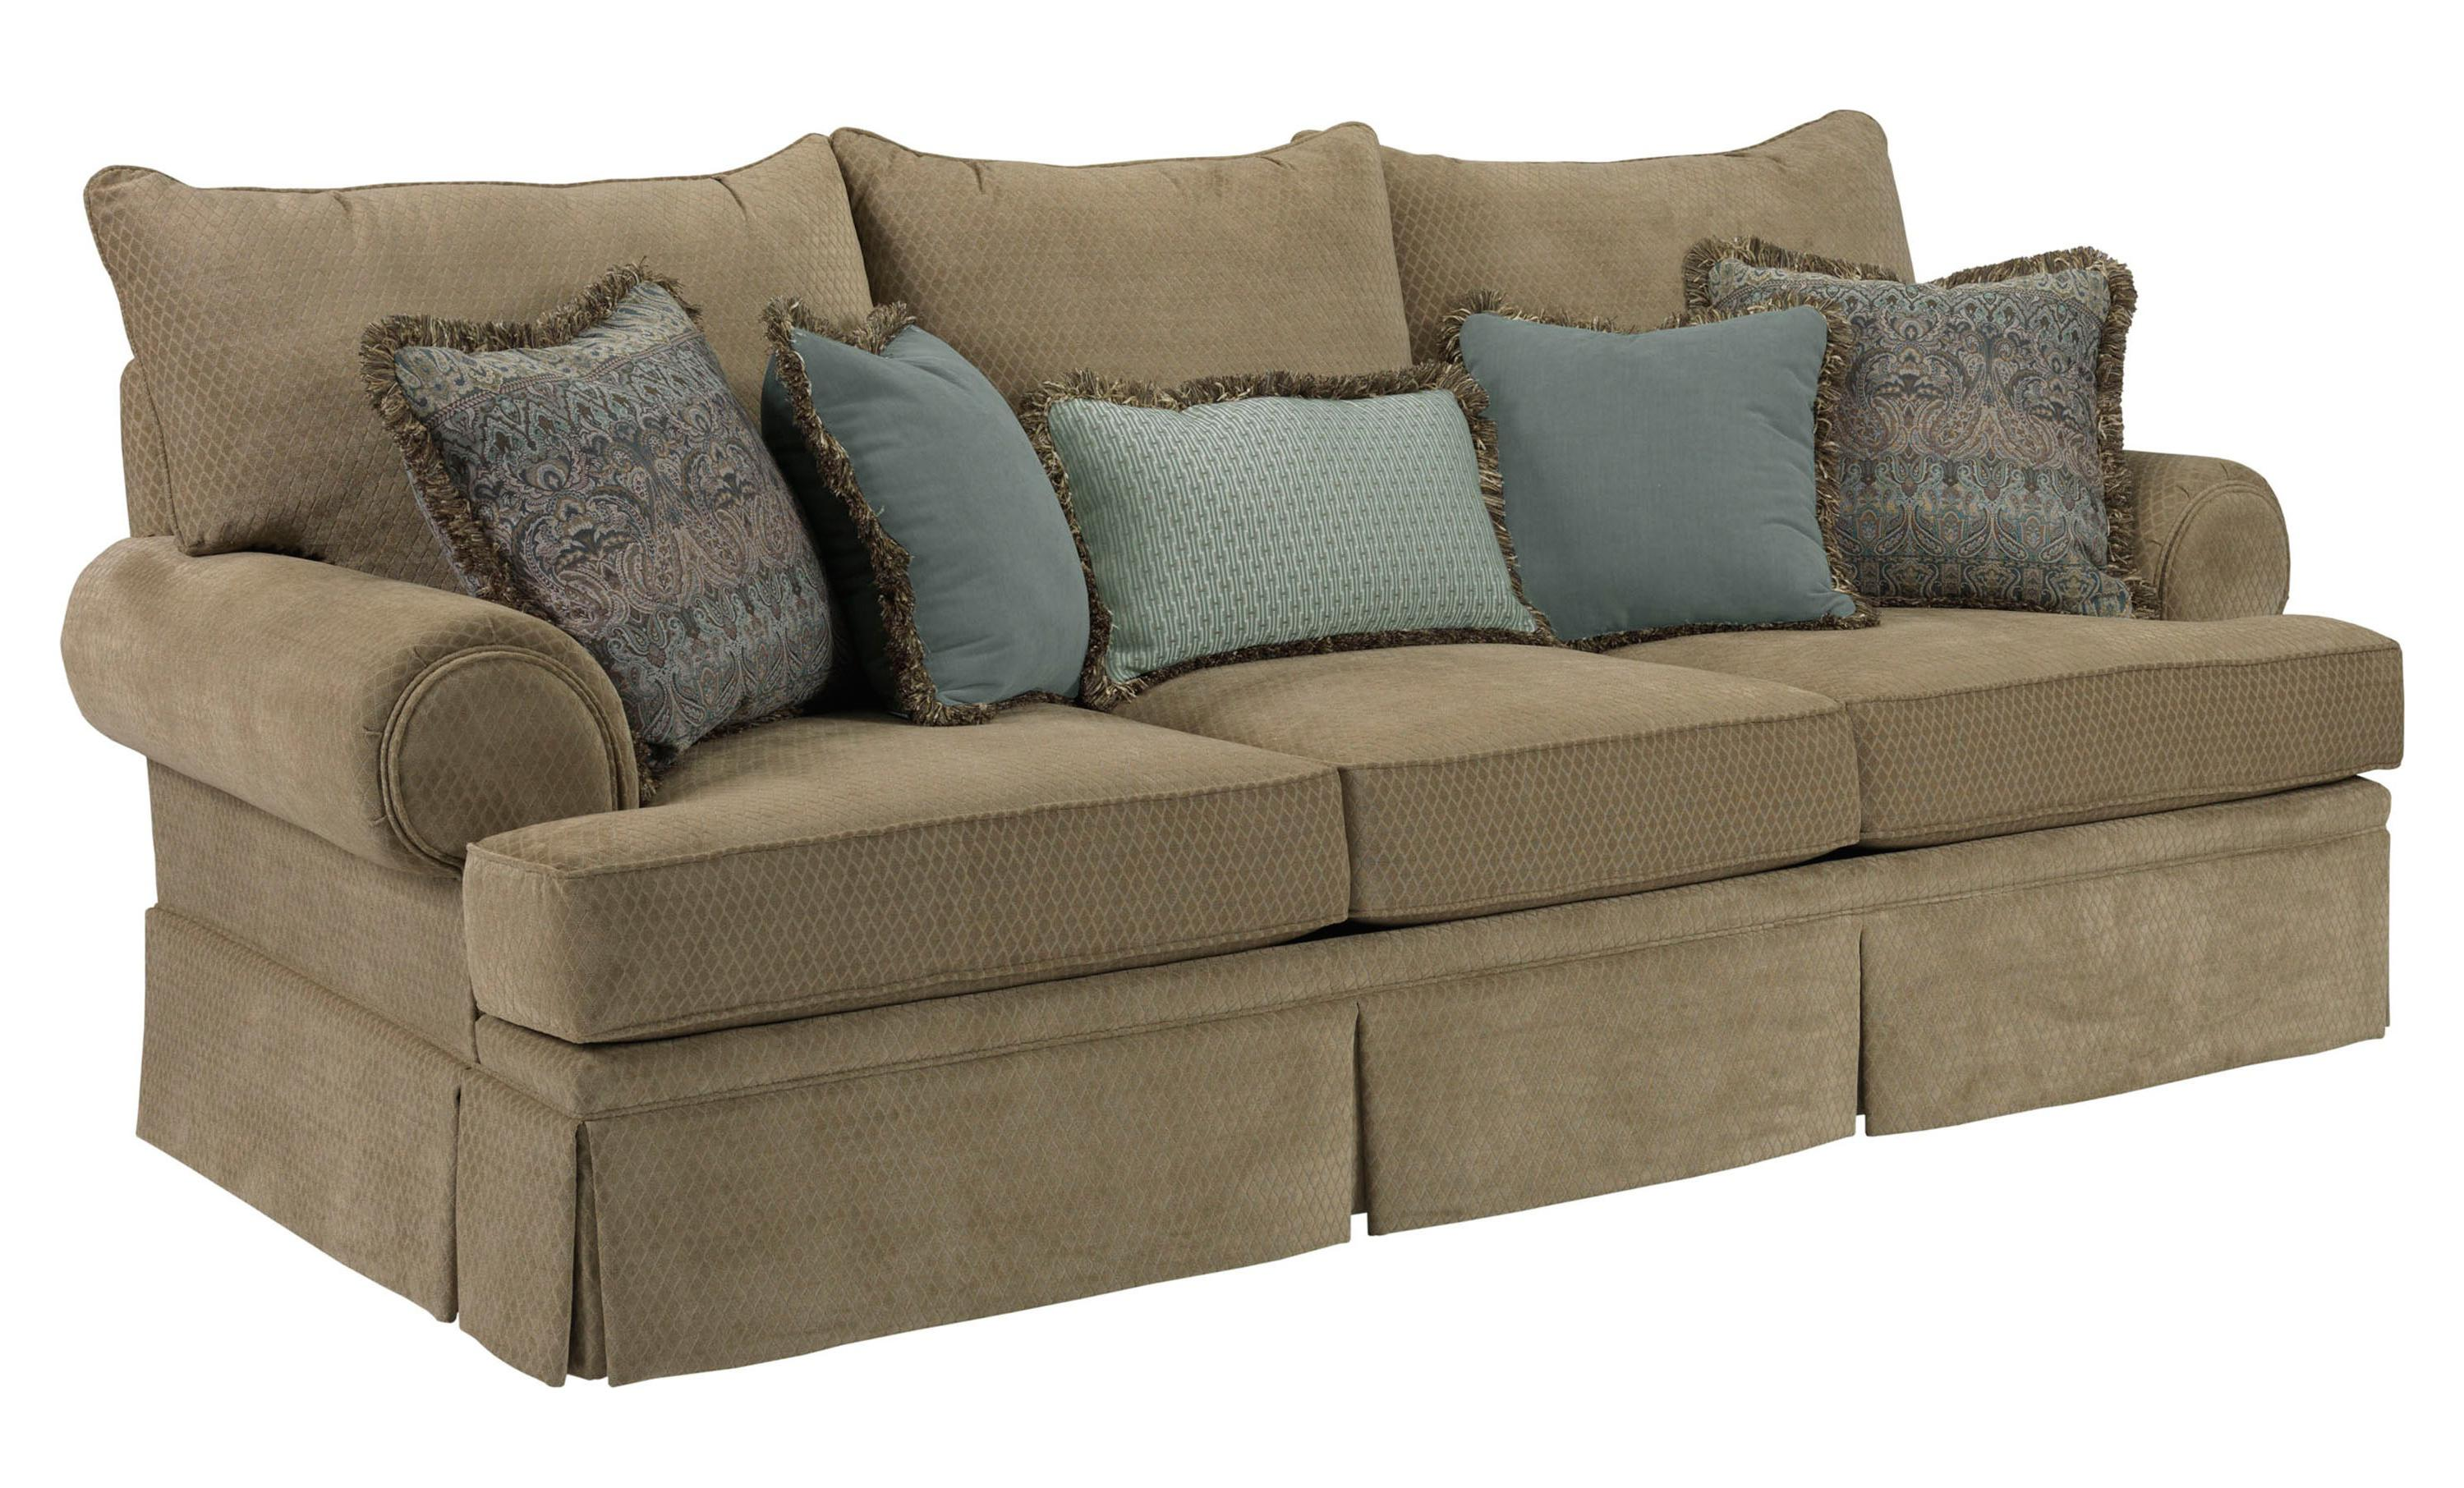 Broyhill Furniture Helena Traditional Skirted Sofa With Rolled